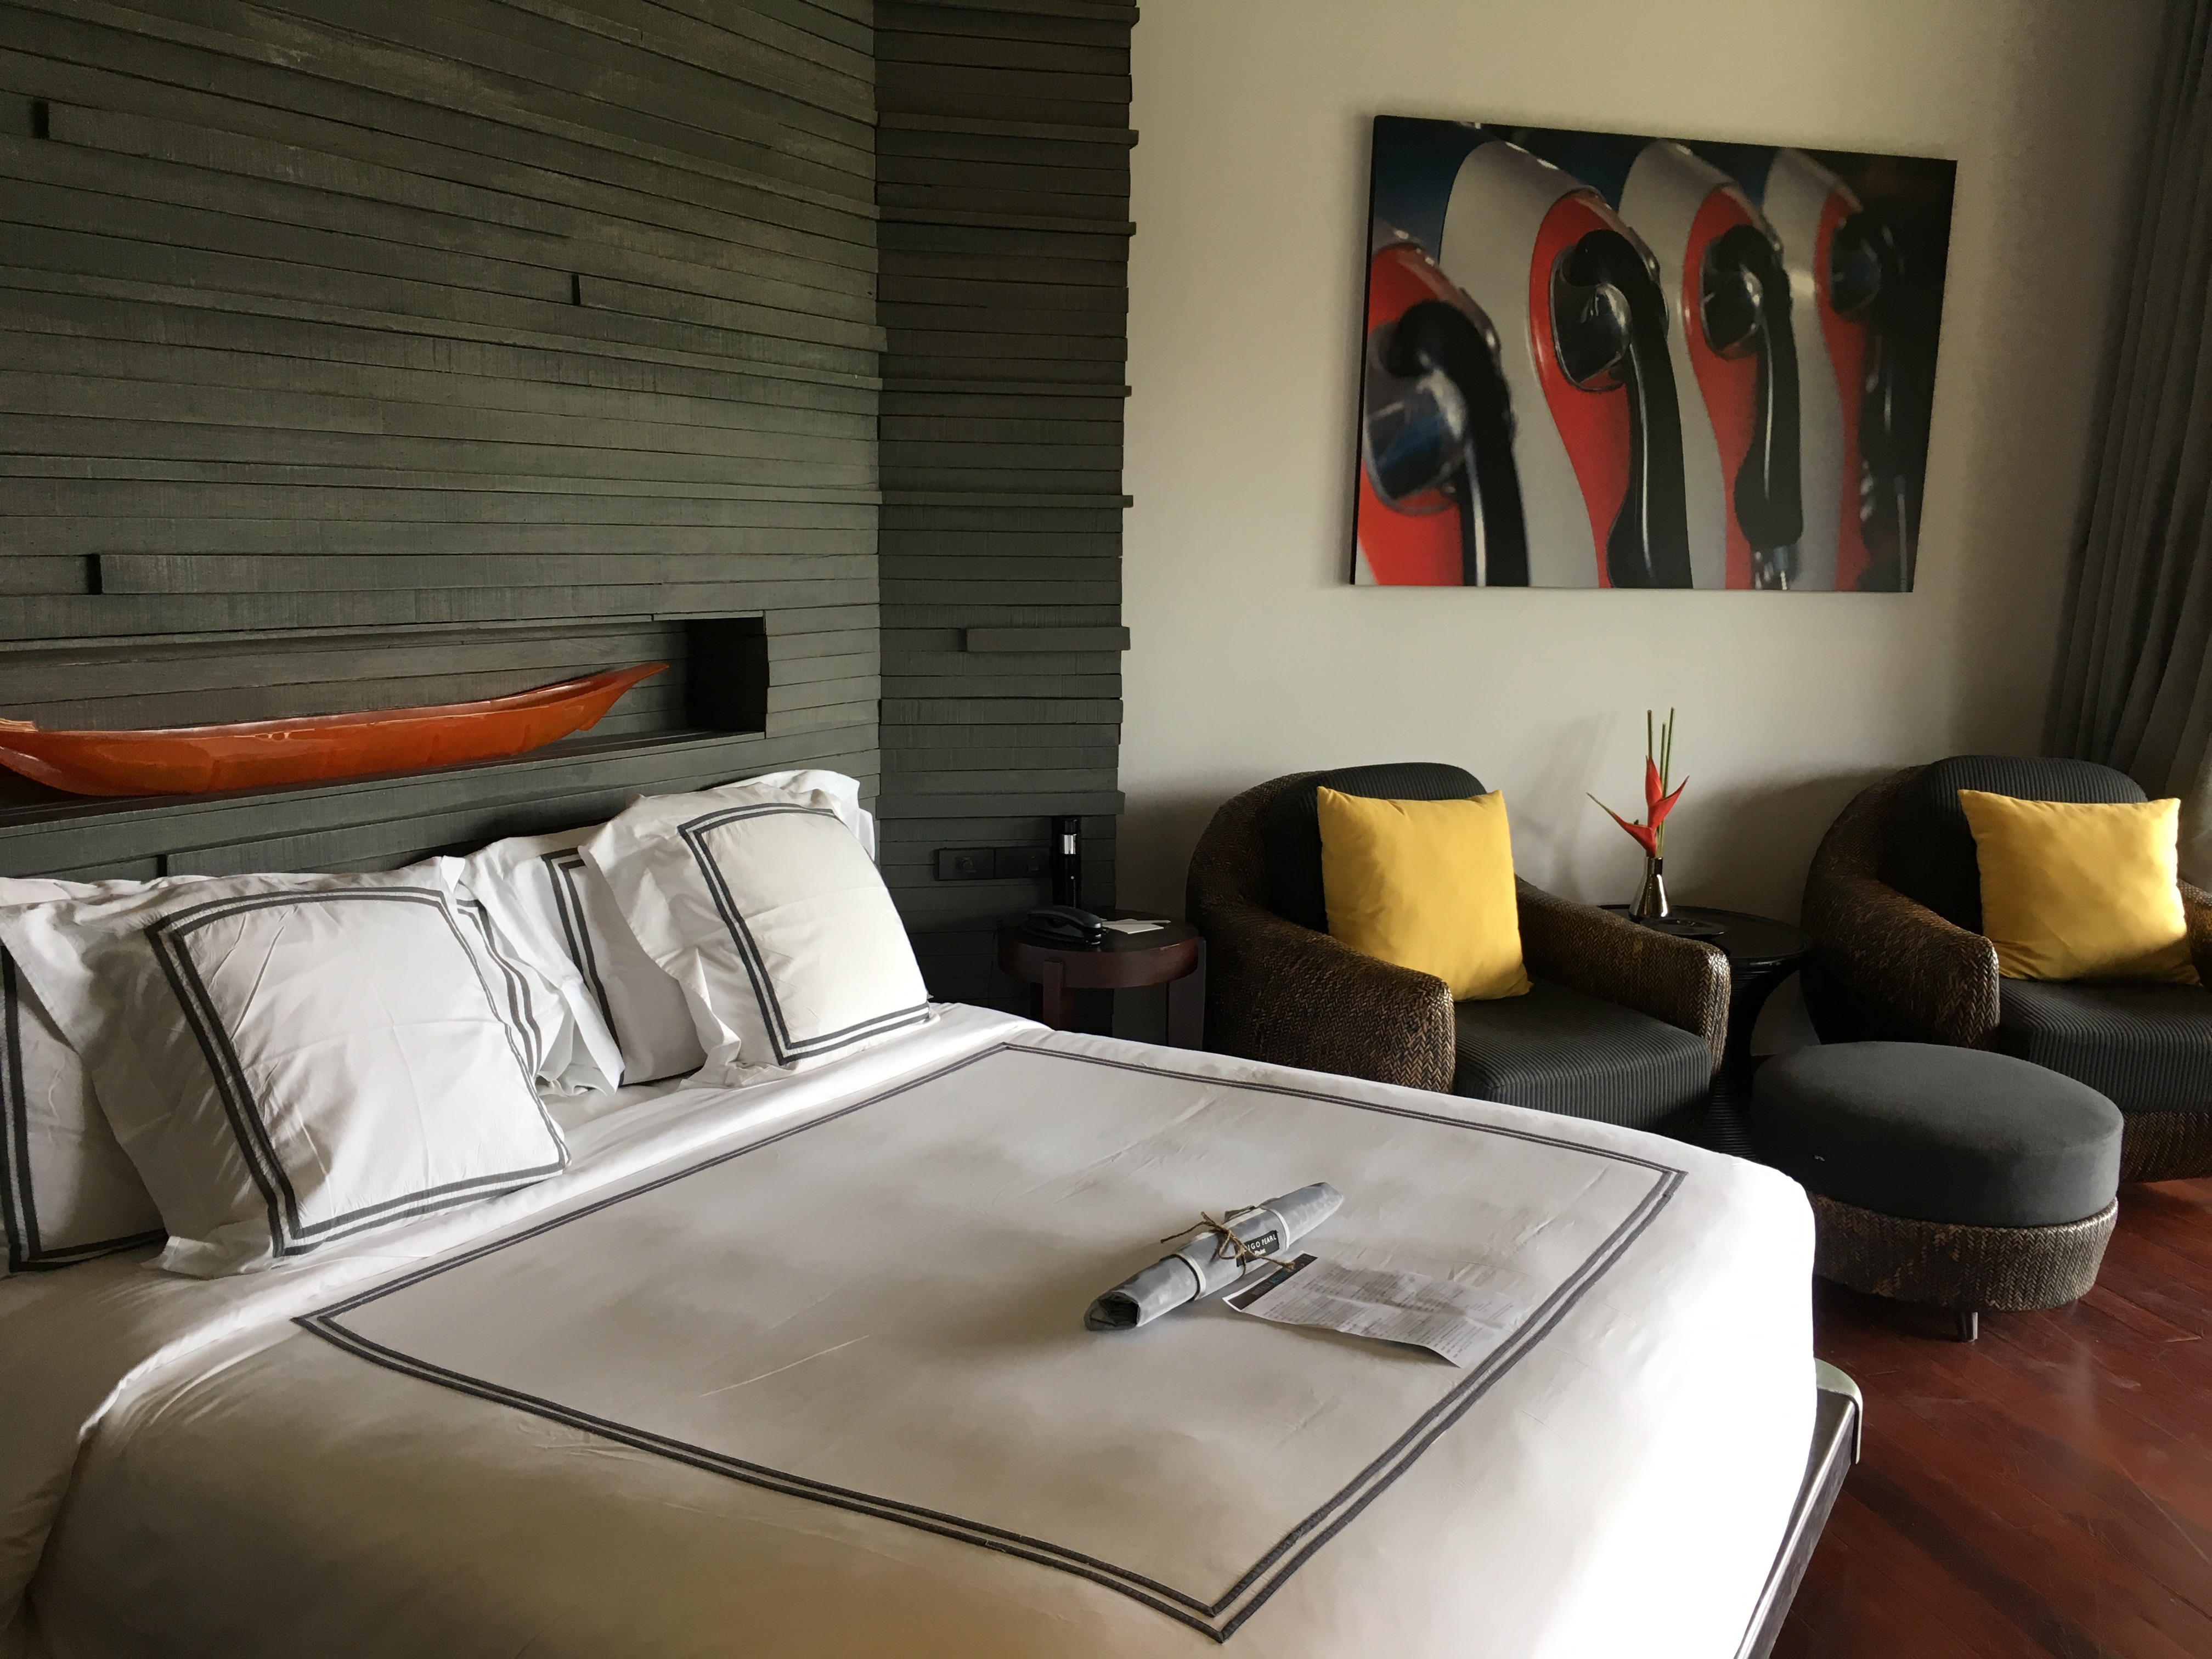 our room at the slate hotel in phuket, thailand – the impatient